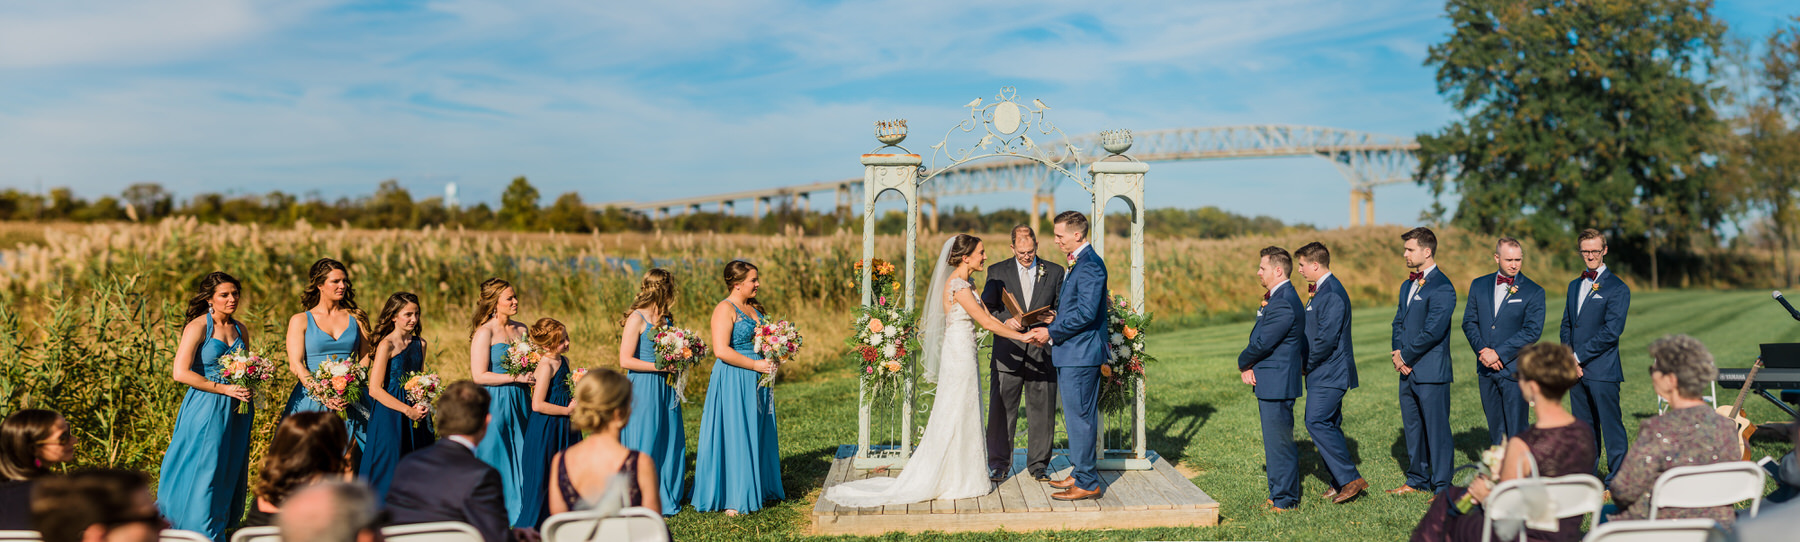 An outdoor ceremony at Thousand Acre Farm by Washington DC Wedding Photography Adam Mason